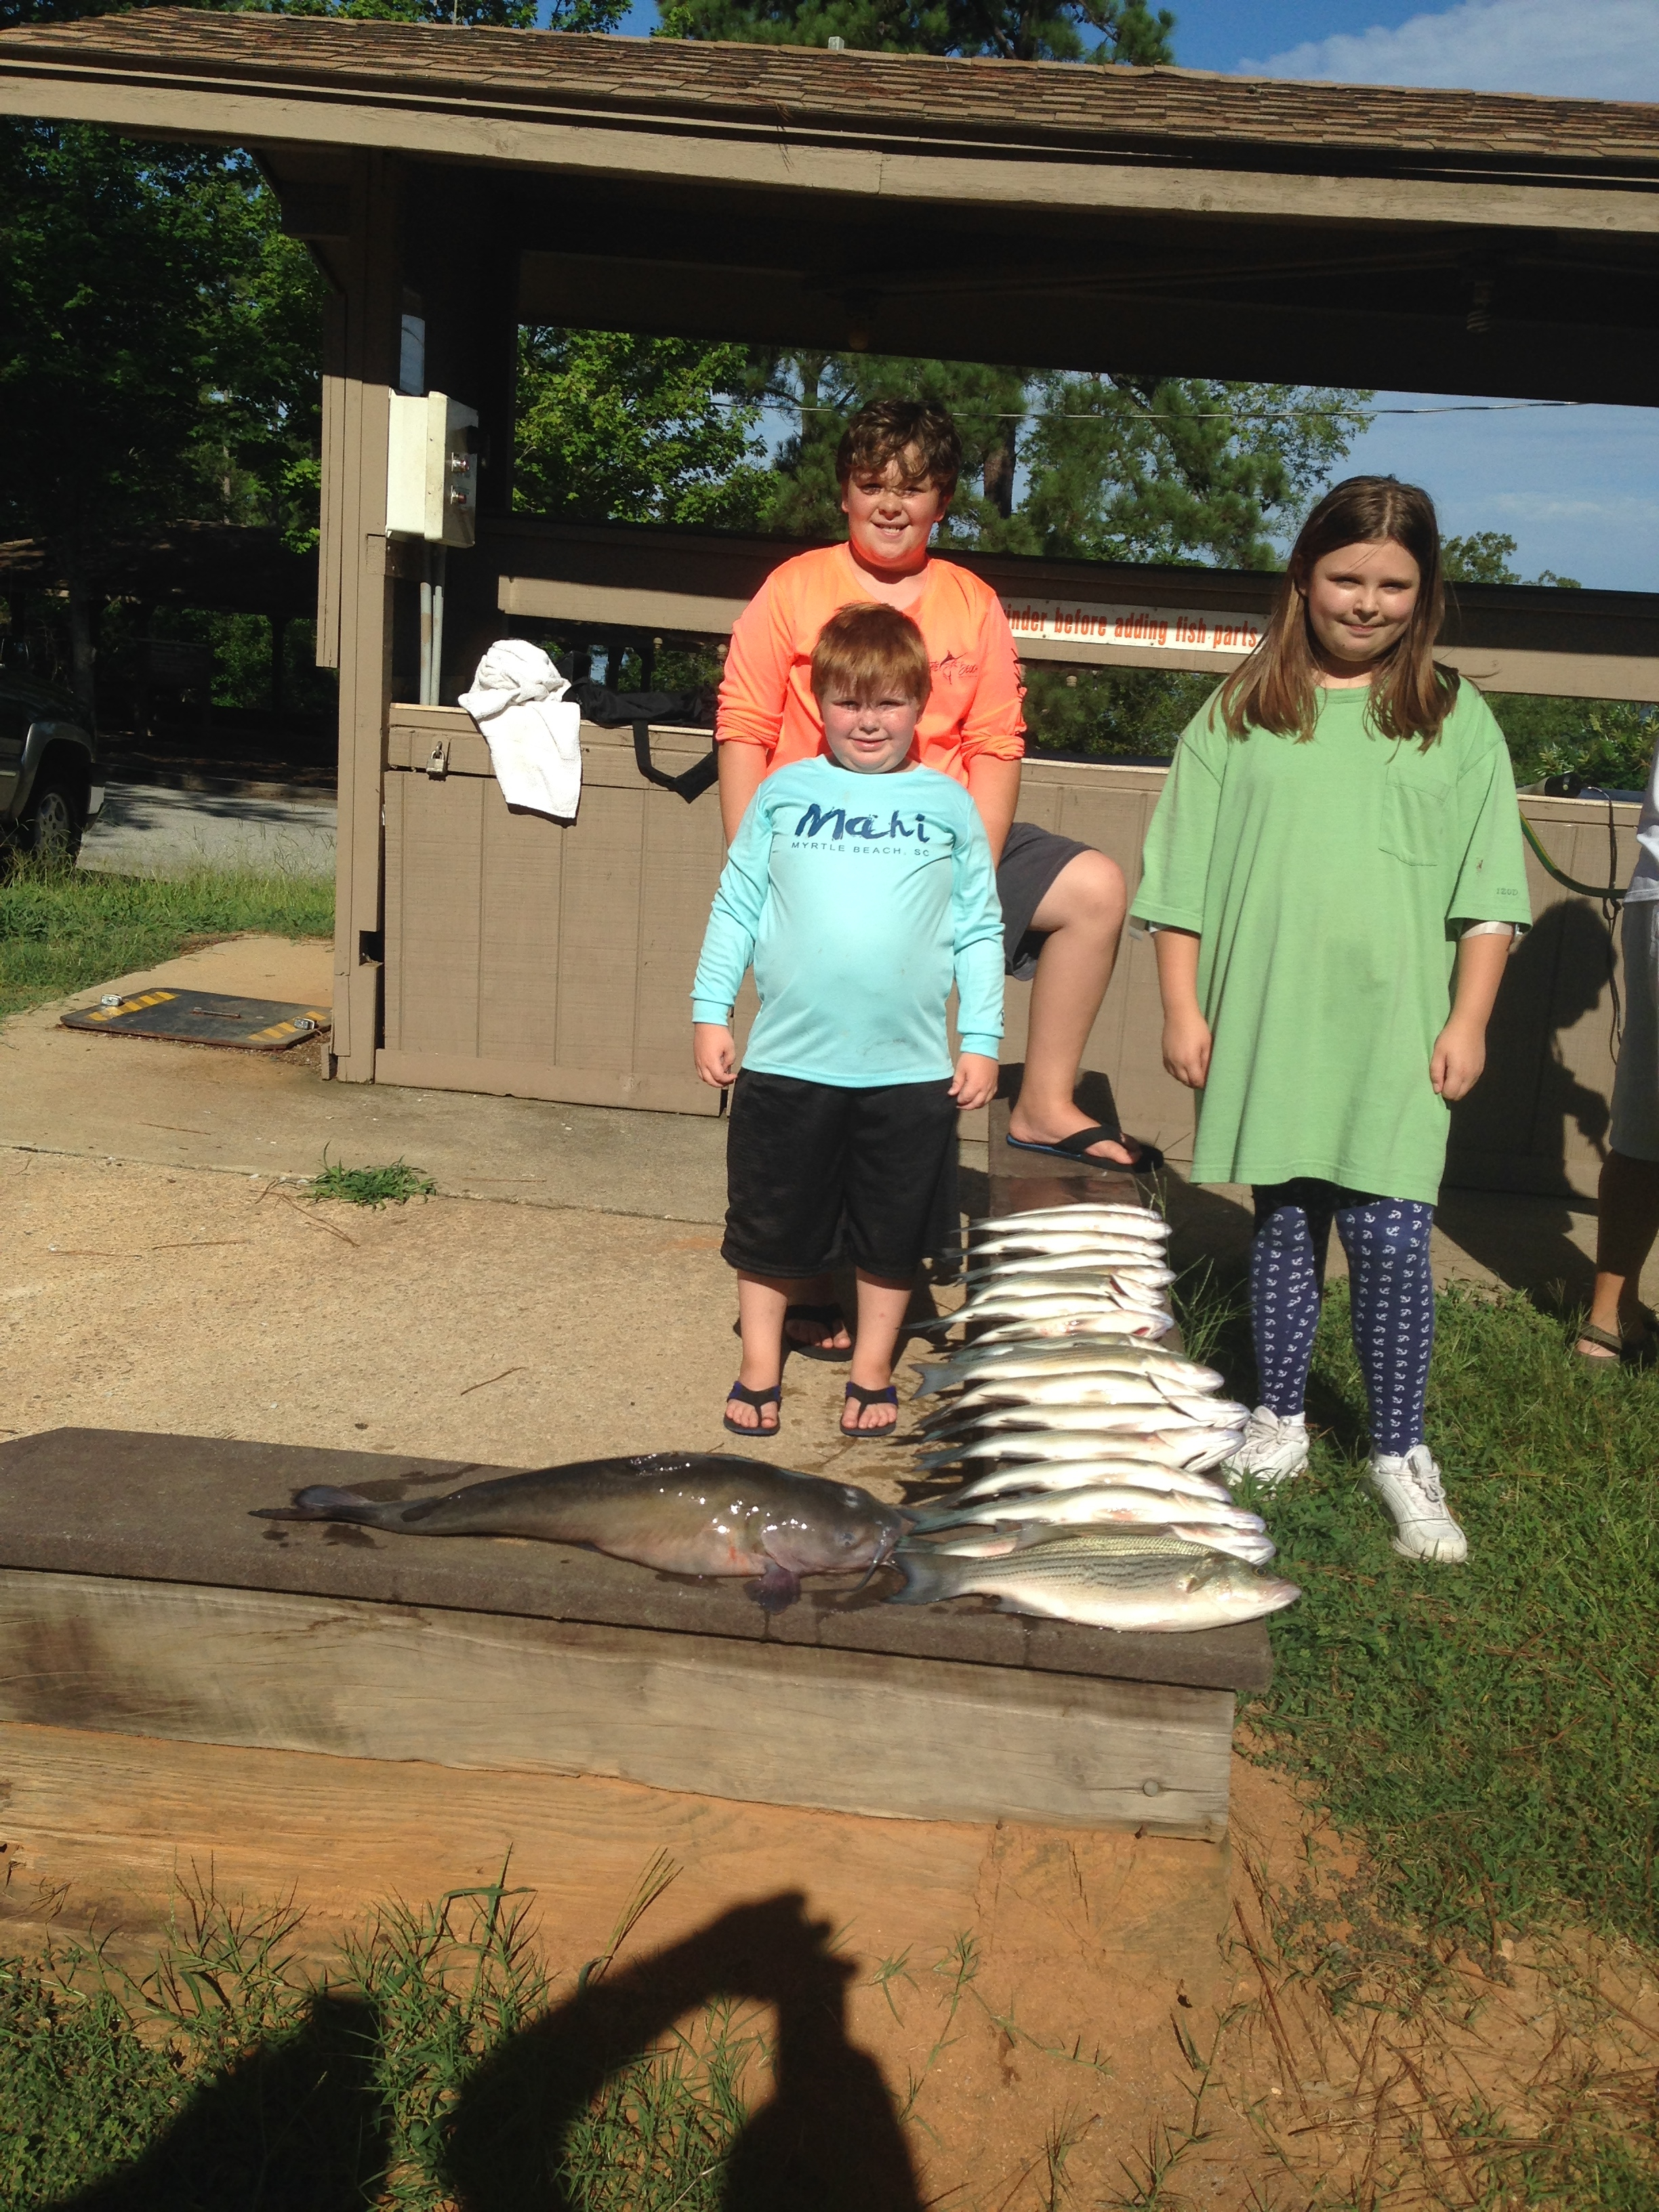 July 15, 2017 James, Bentley Murphy with their cousin Abby Murphy fish they caught fishing with their Poppa Billy